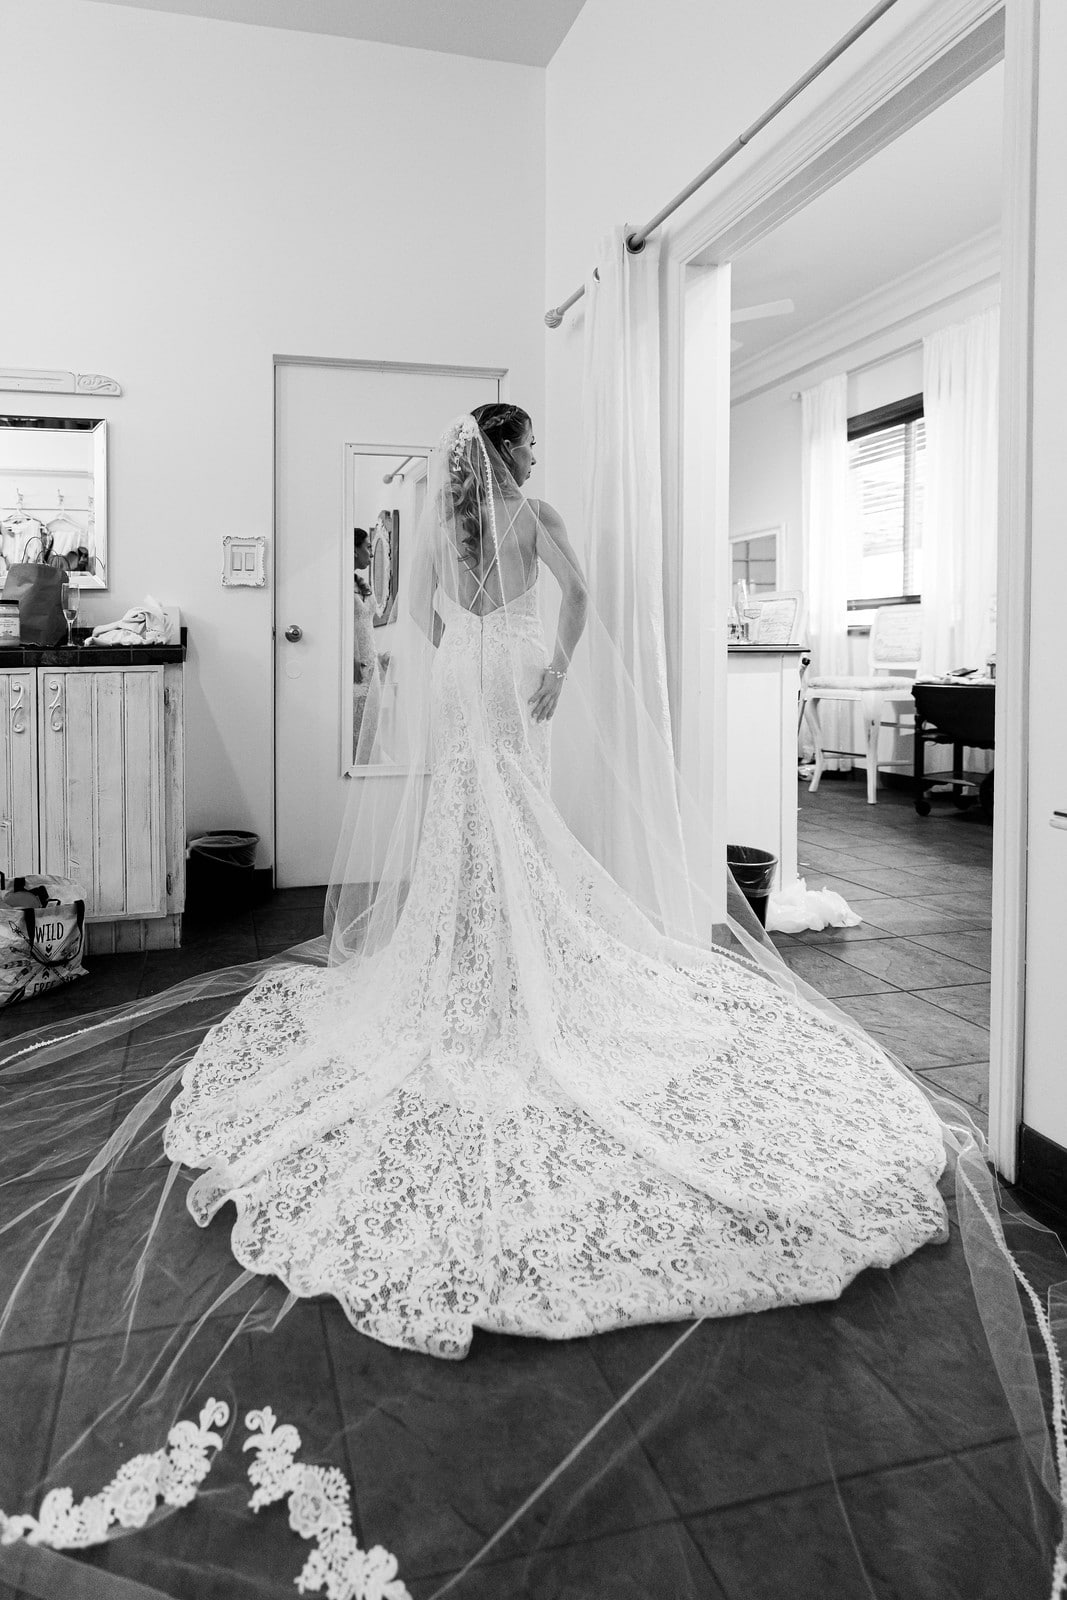 Bridal gown and spectacular train